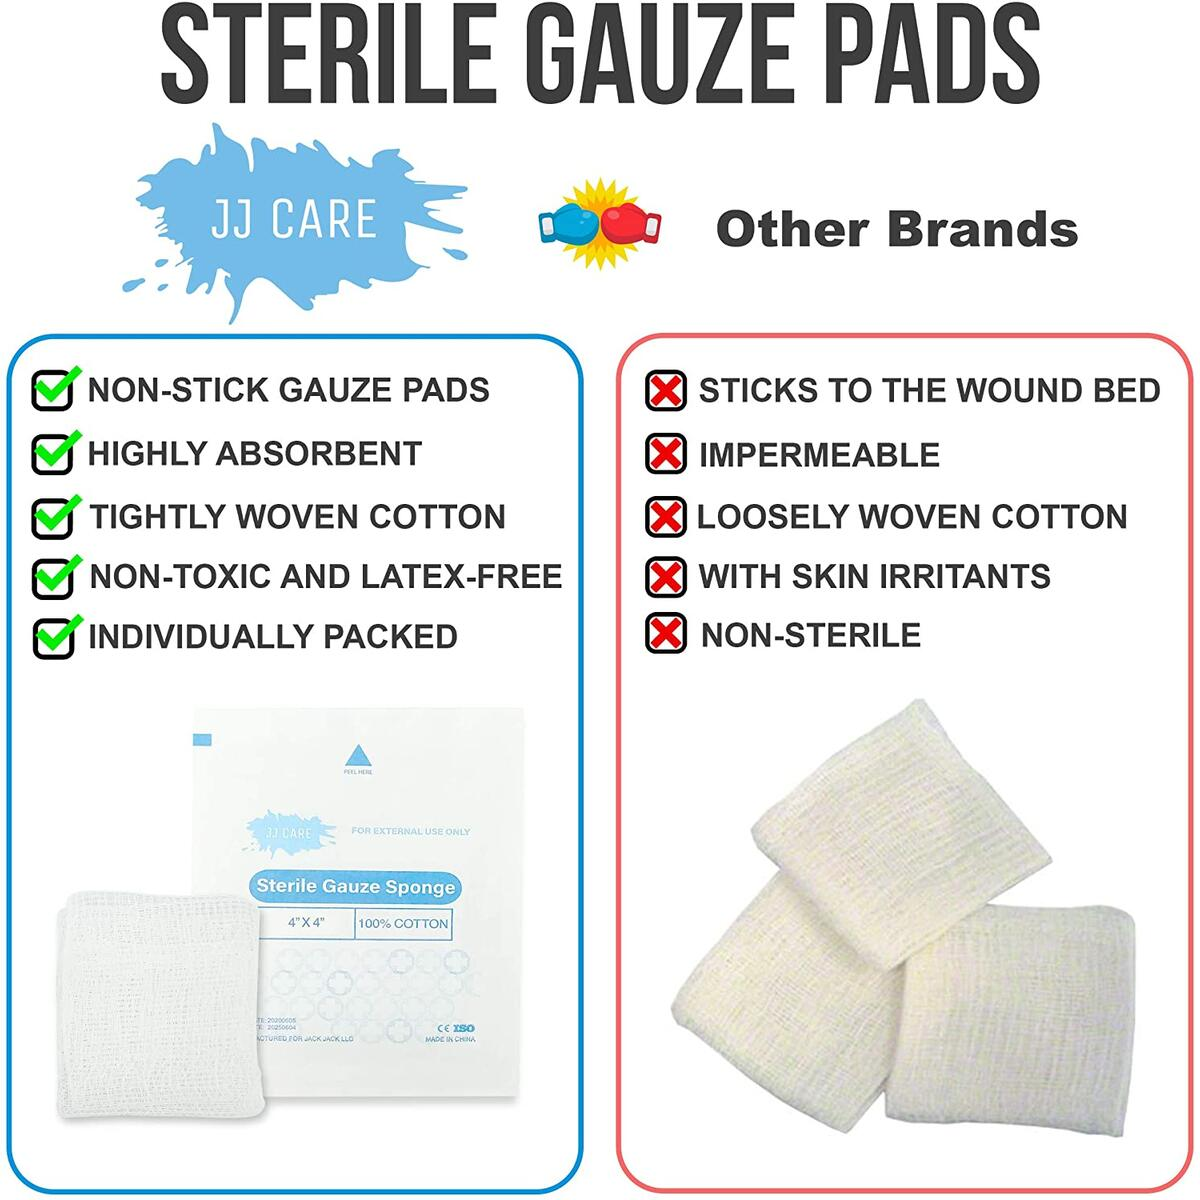 [Box of 100] 4x4 Sterile Gauze Pads 12-Ply Cotton Gauze Pads, 100% Woven Medical Gauze Pads, Individually-Wrapped Sterile Gauze Sponges, Non-Stick Gauze Pads for First Aid Kit and Wound Care